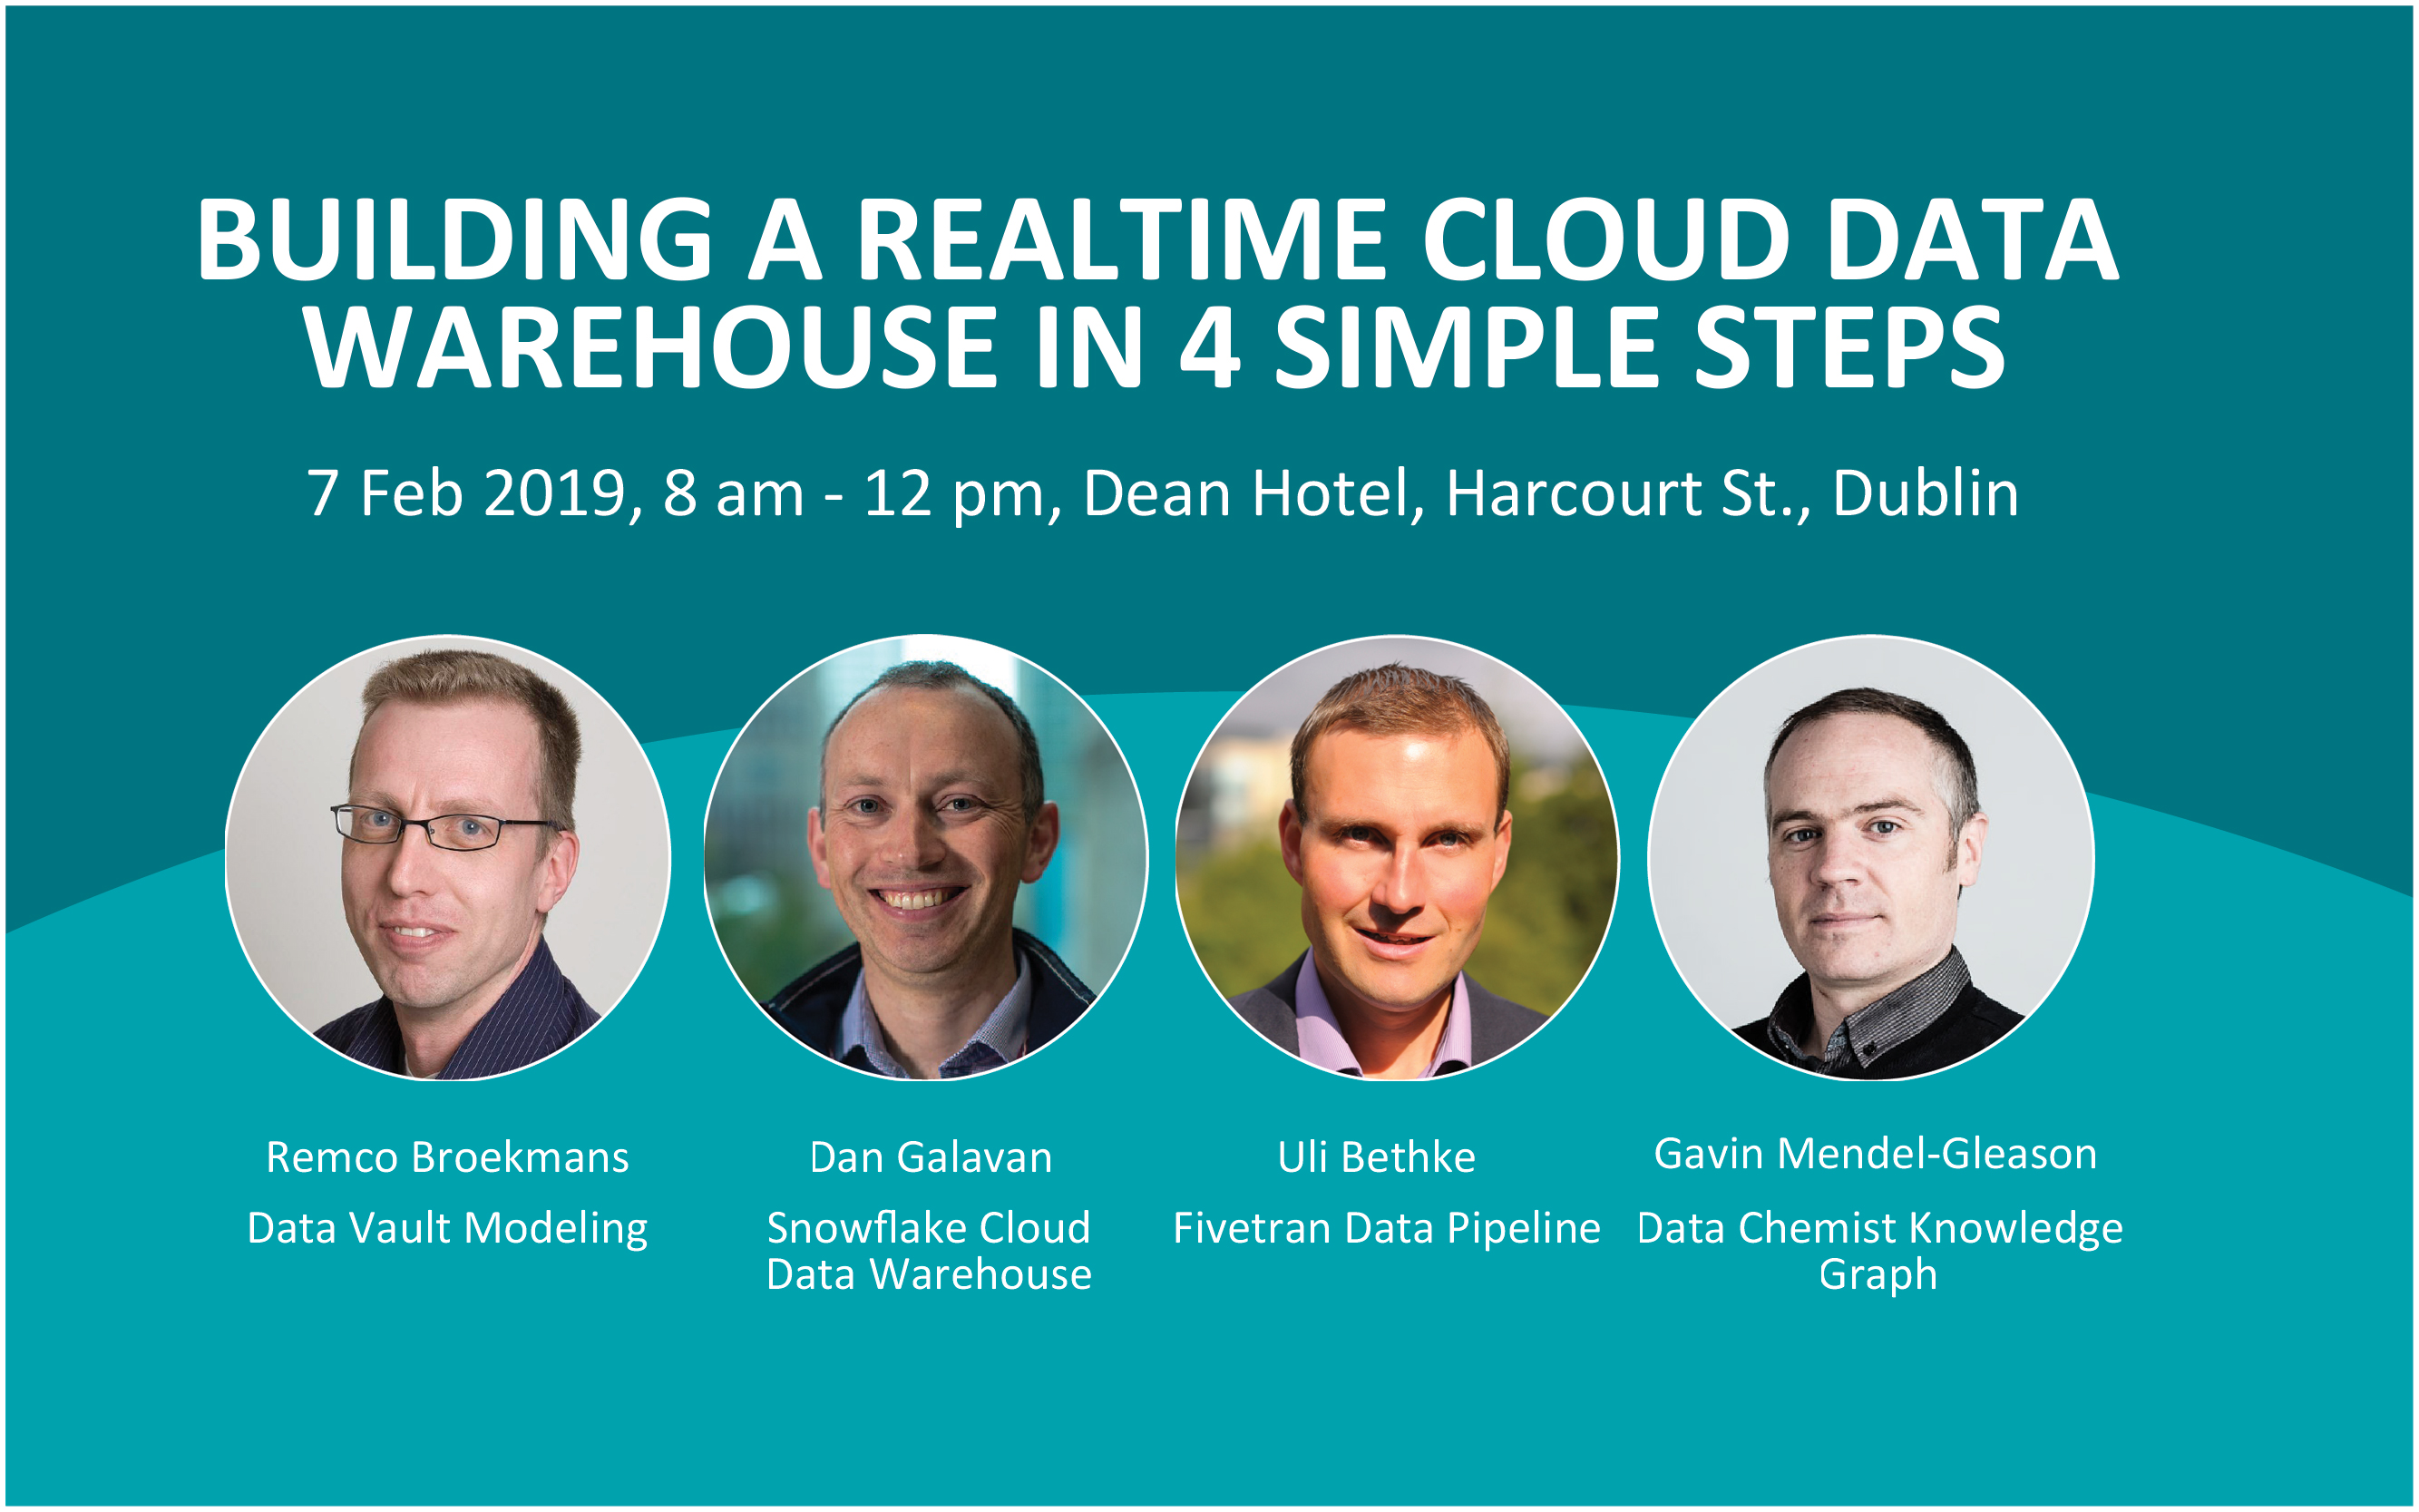 Event] Building a realtime cloud data warehouse in 4 simple steps